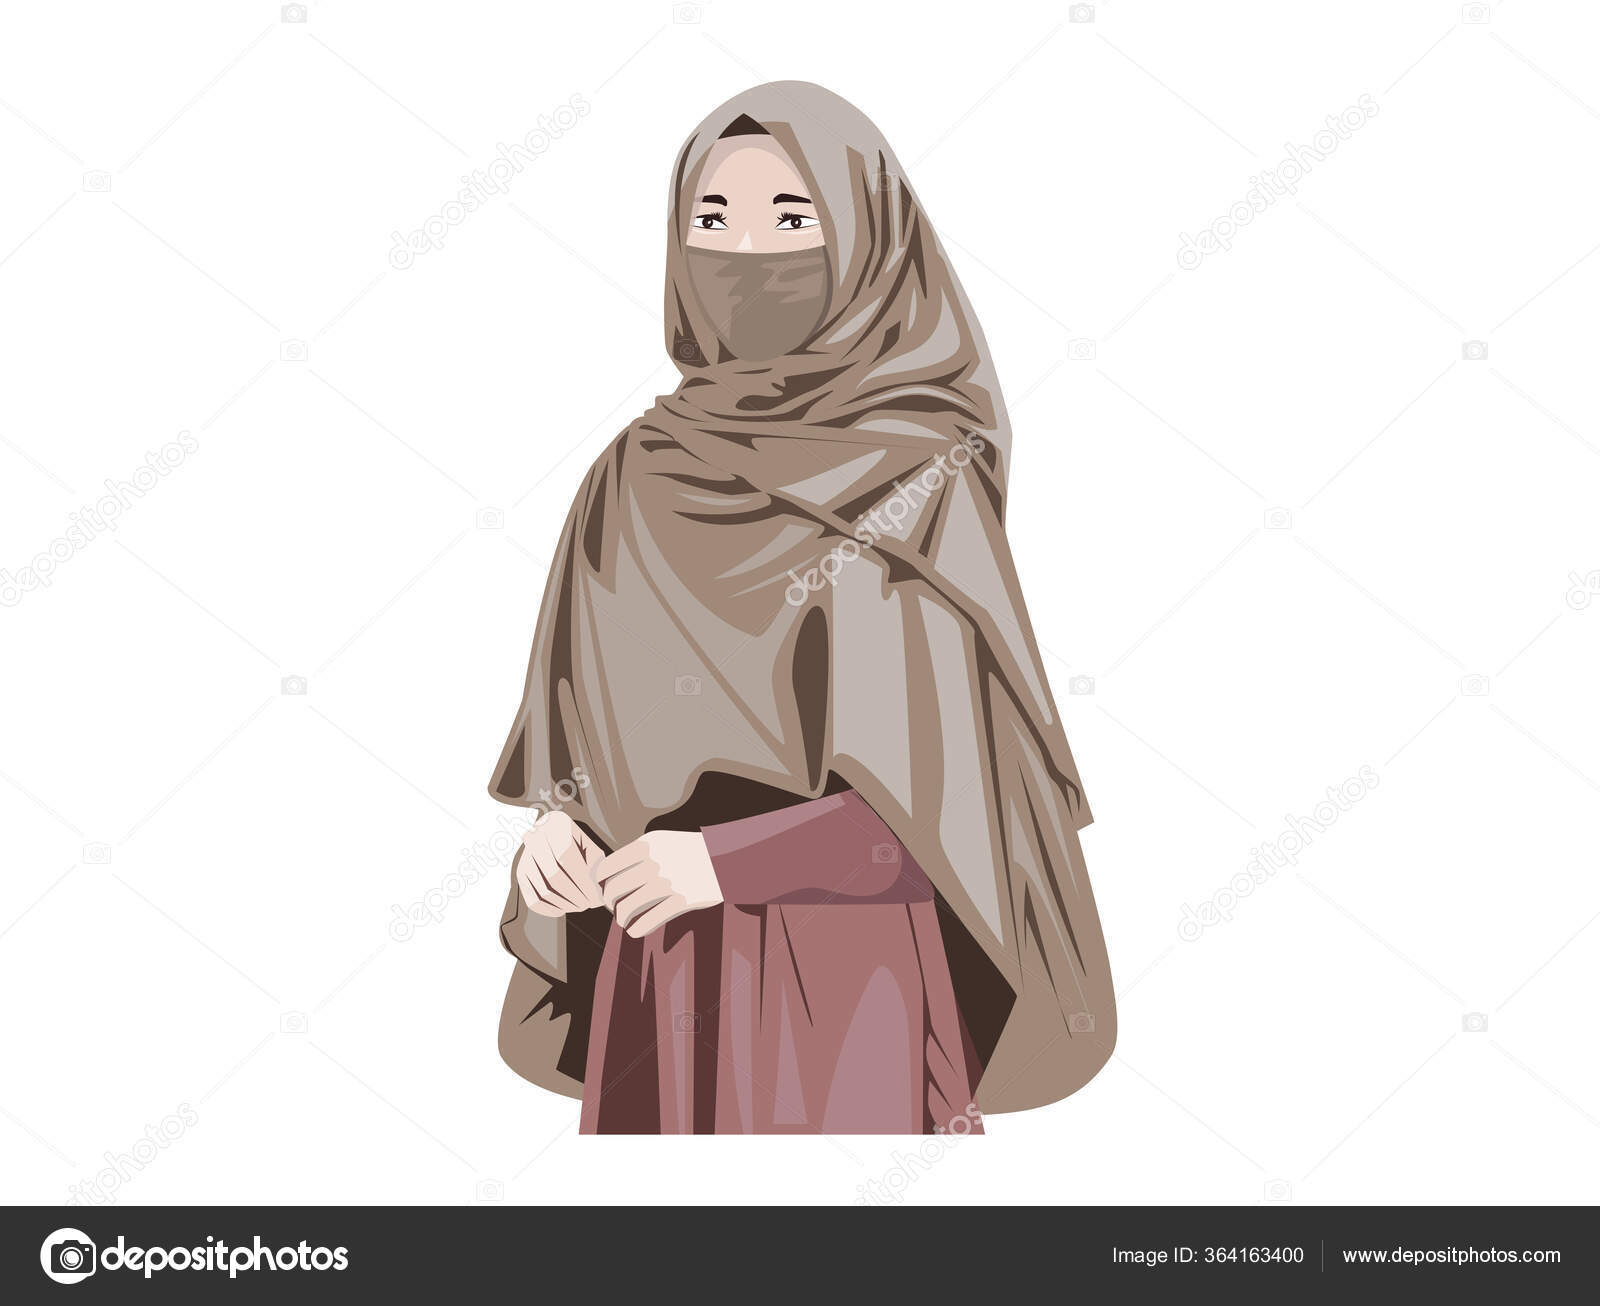 Is incompatible with the discrimination act, the ombudsman confirmed that the islamic dress code is thus protected under the law. Beautiful Muslim Women Niqab Cartoon Islamic Women Niqab Stock Vector Image By C Meenstockphoto Gmail Com 364163400